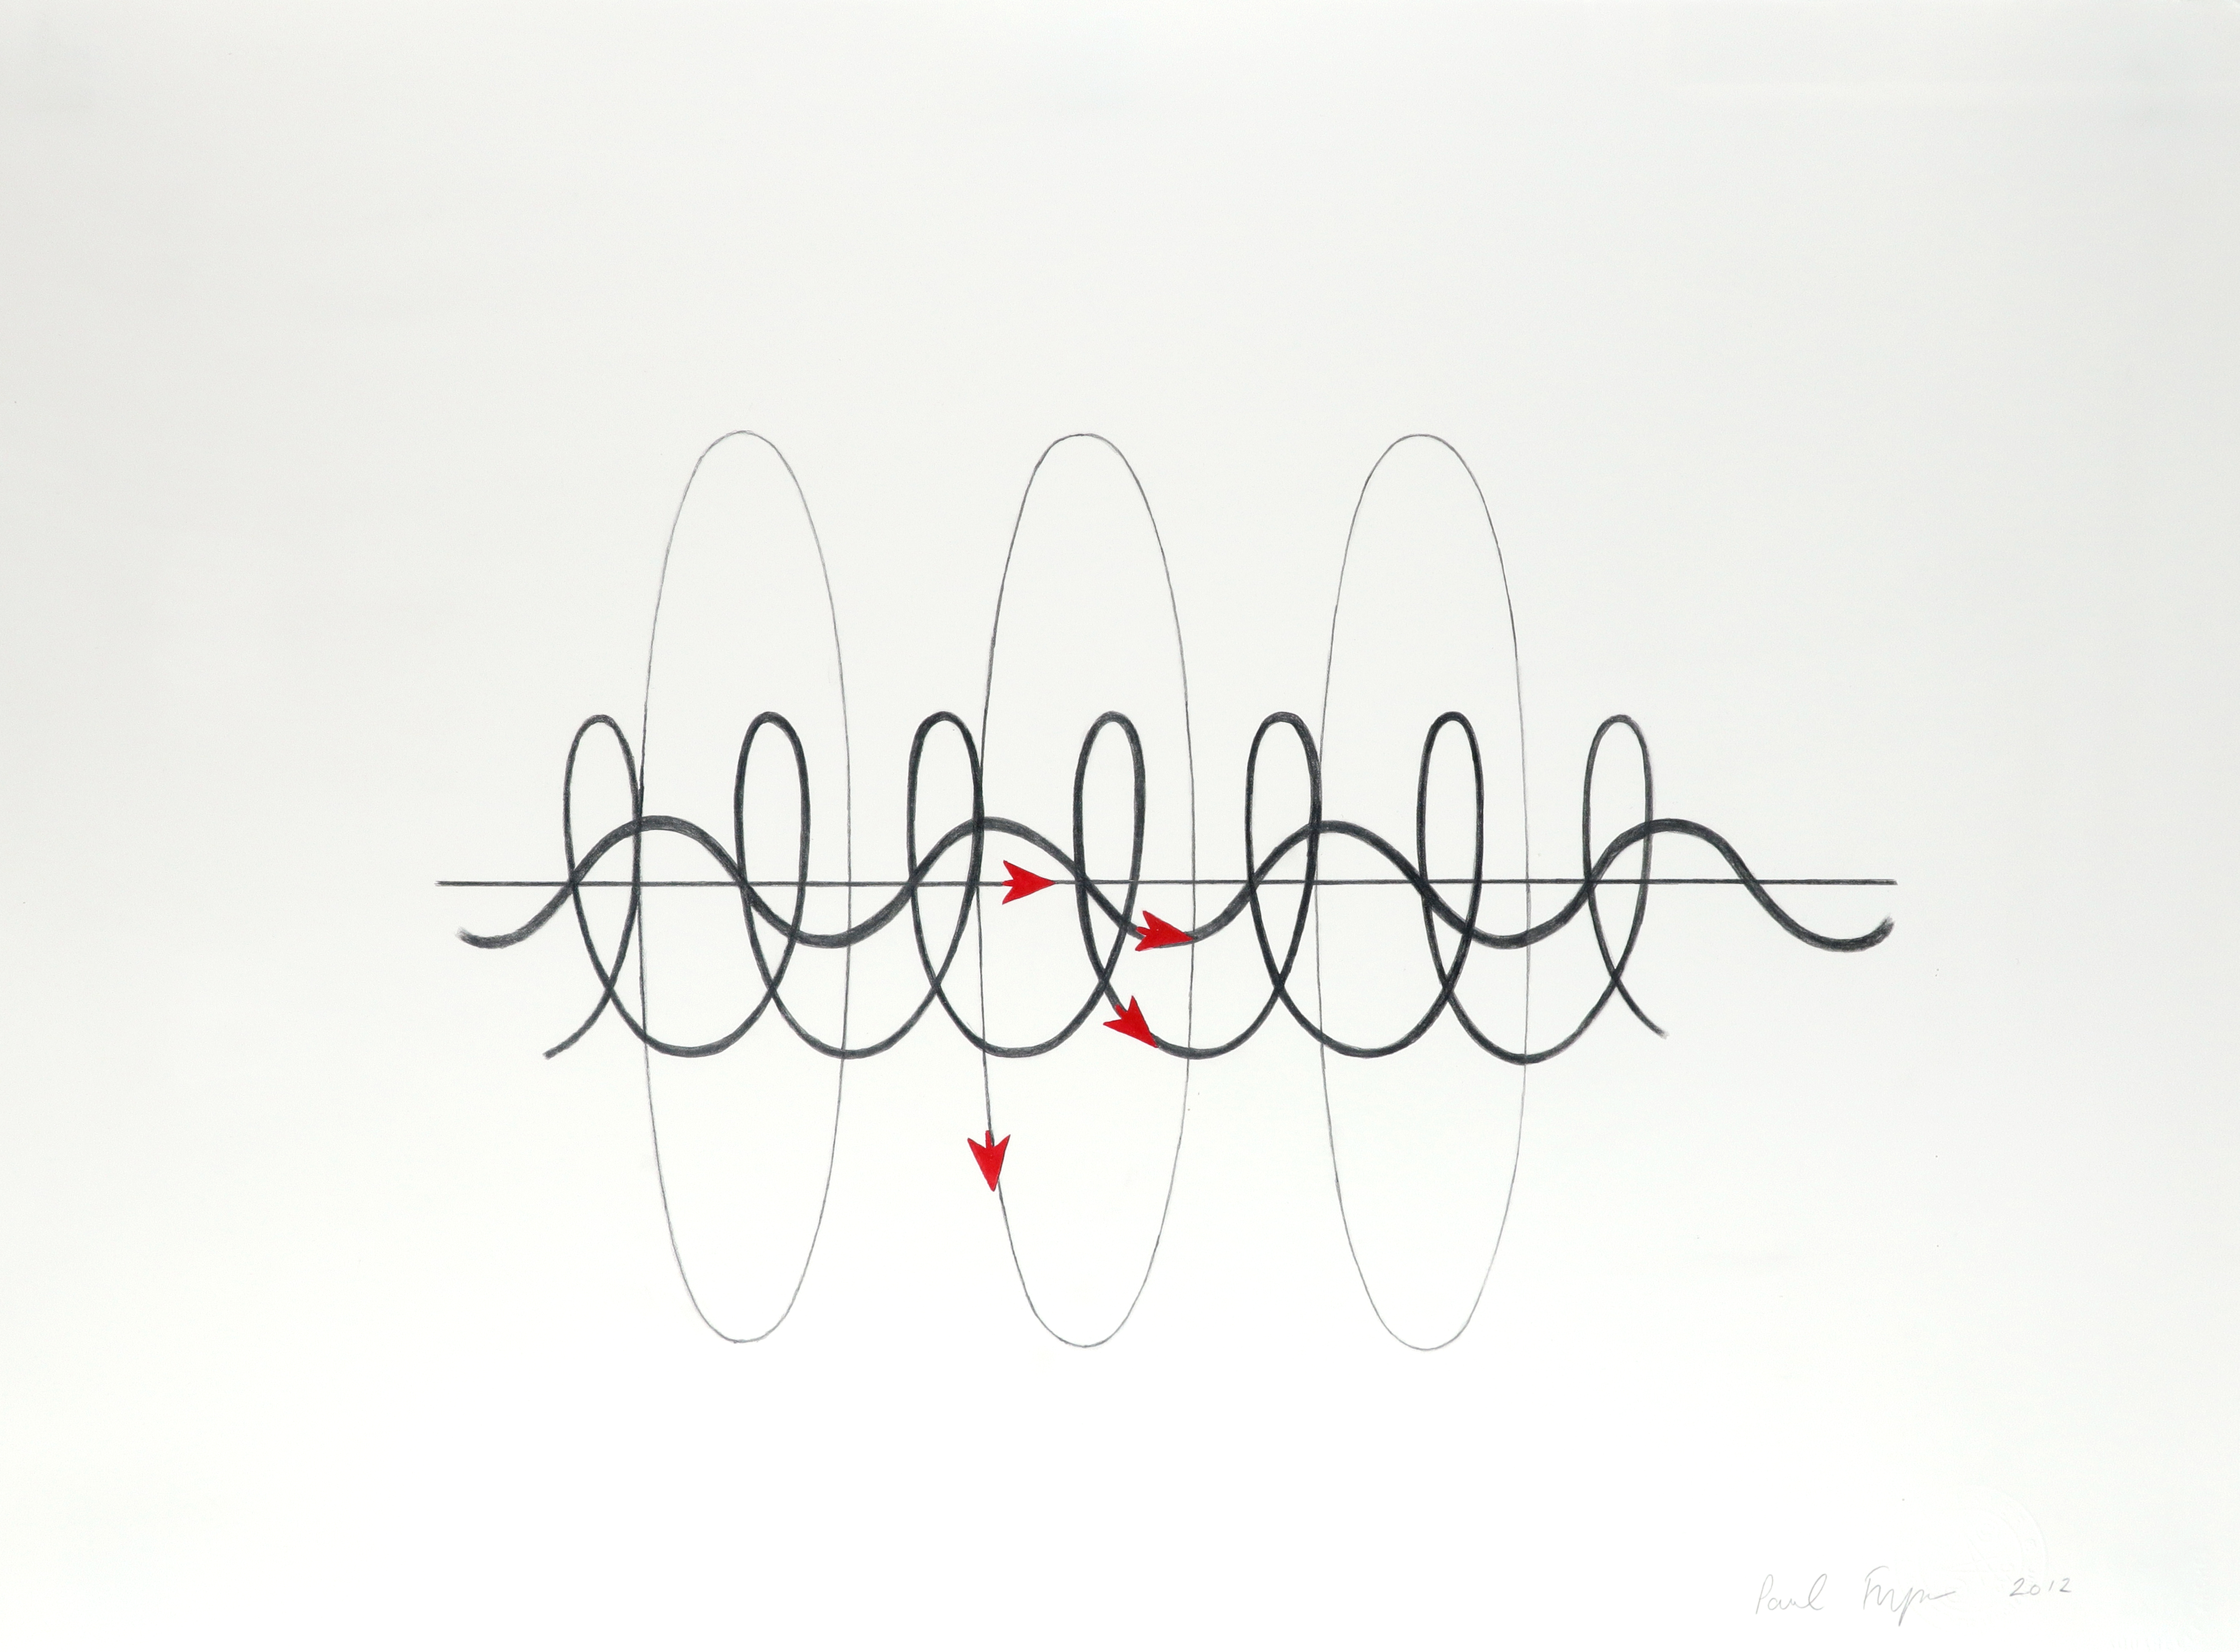 ‡Paul Fryer (b. 1963) Sign Wave Signed Paul Fryer 2012 (lower right) Pencil heightened with red 57 x